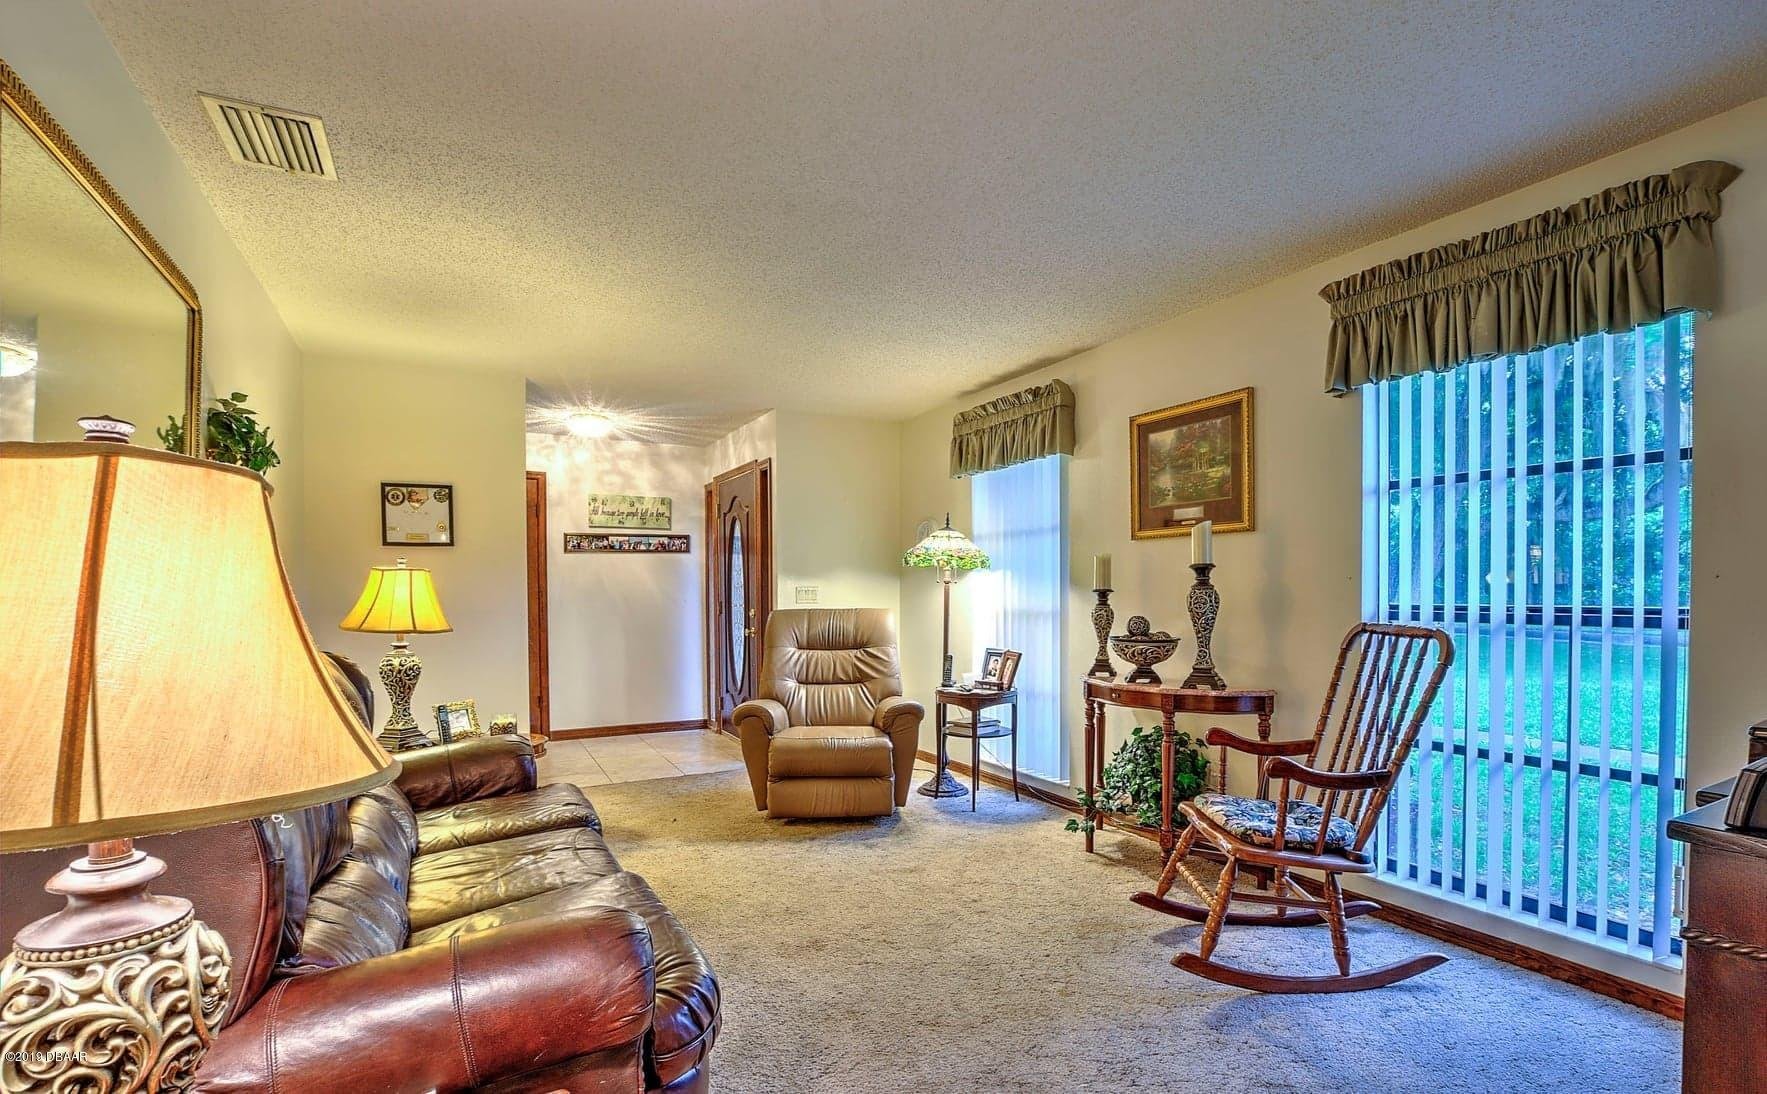 Home for Sale | 1886 Air Park Road, Edgewater